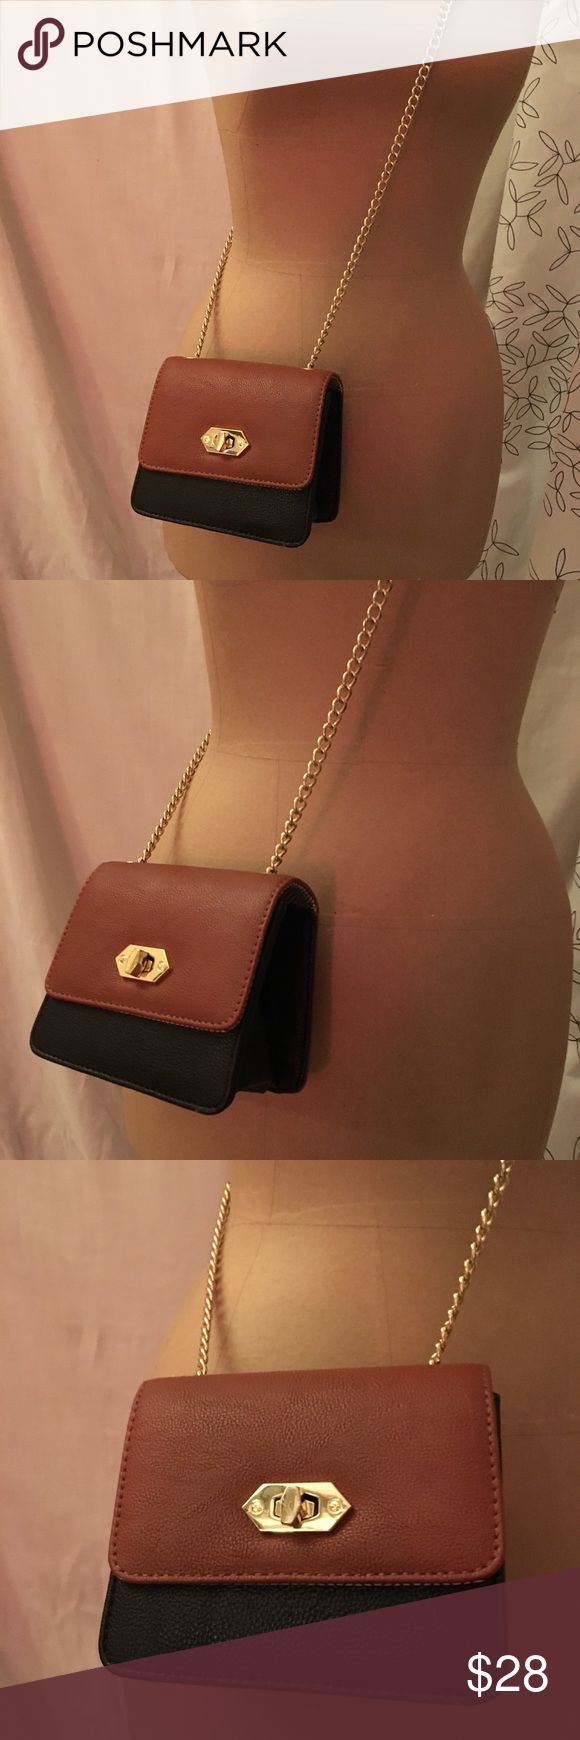 Small Steve Madden purse Small brown/black Steve Madden purse with cold chain as strap. Steve Madden Bags Crossbody Bags